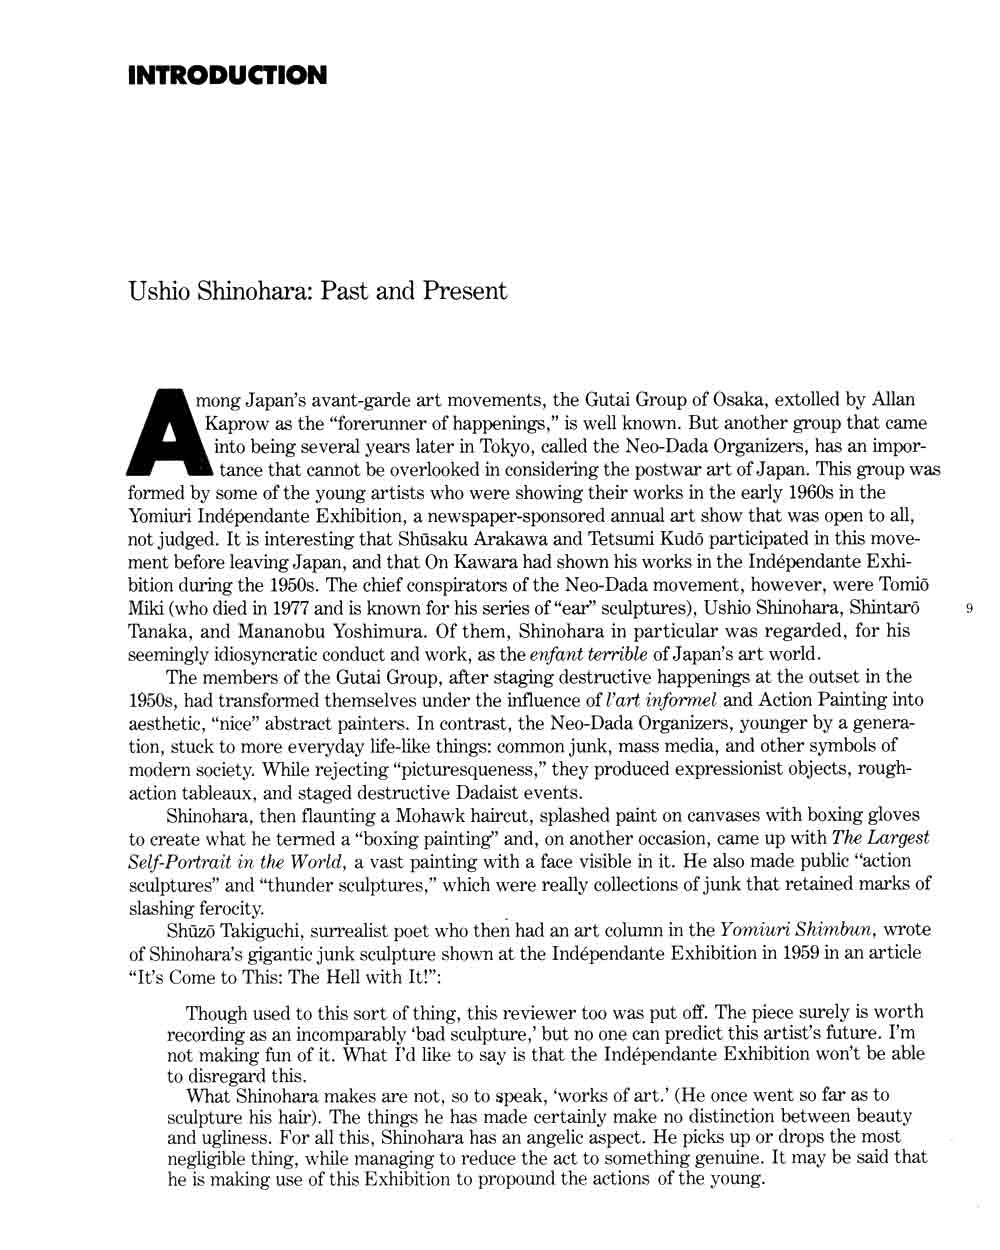 shinohara ushio selected document a digital ushio shinohara past and present essay pg 1